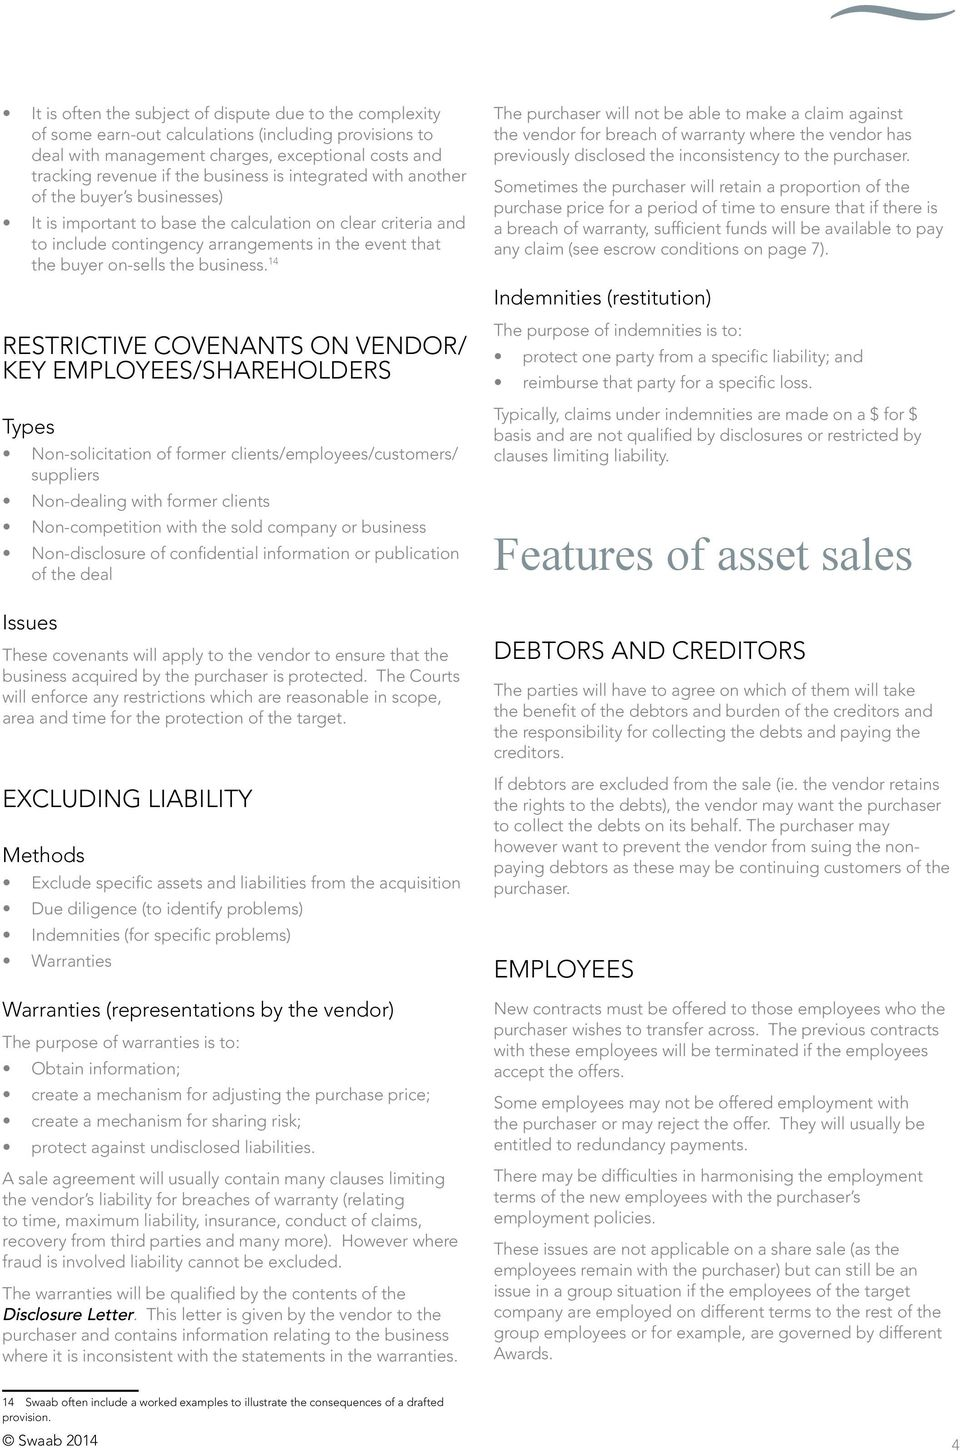 14 RESTRICTIVE COVENANTS ON VENDOR/ KEY EMPLOYEES/SHAREHOLDERS Types Non-solicitation of former clients/employees/customers/ suppliers Non-dealing with former clients Non-competition with the sold